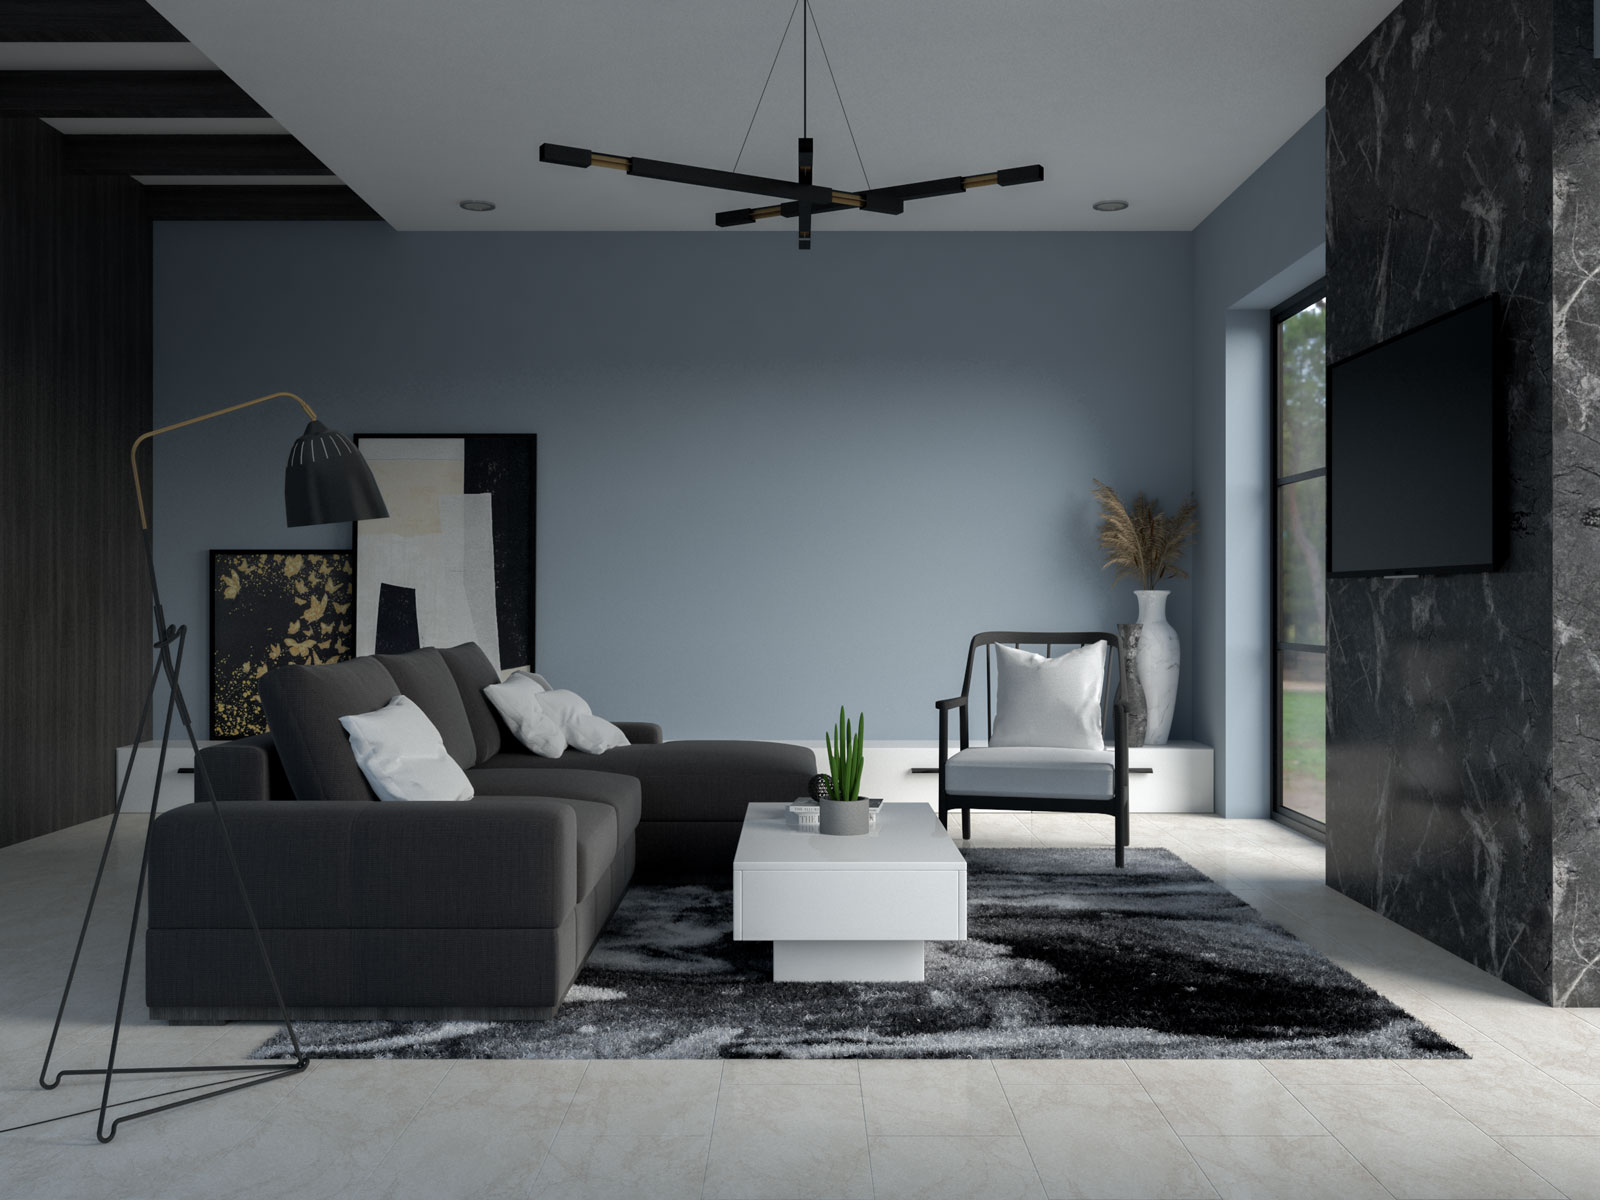 aleutian blue living room walls with black and white furnishings